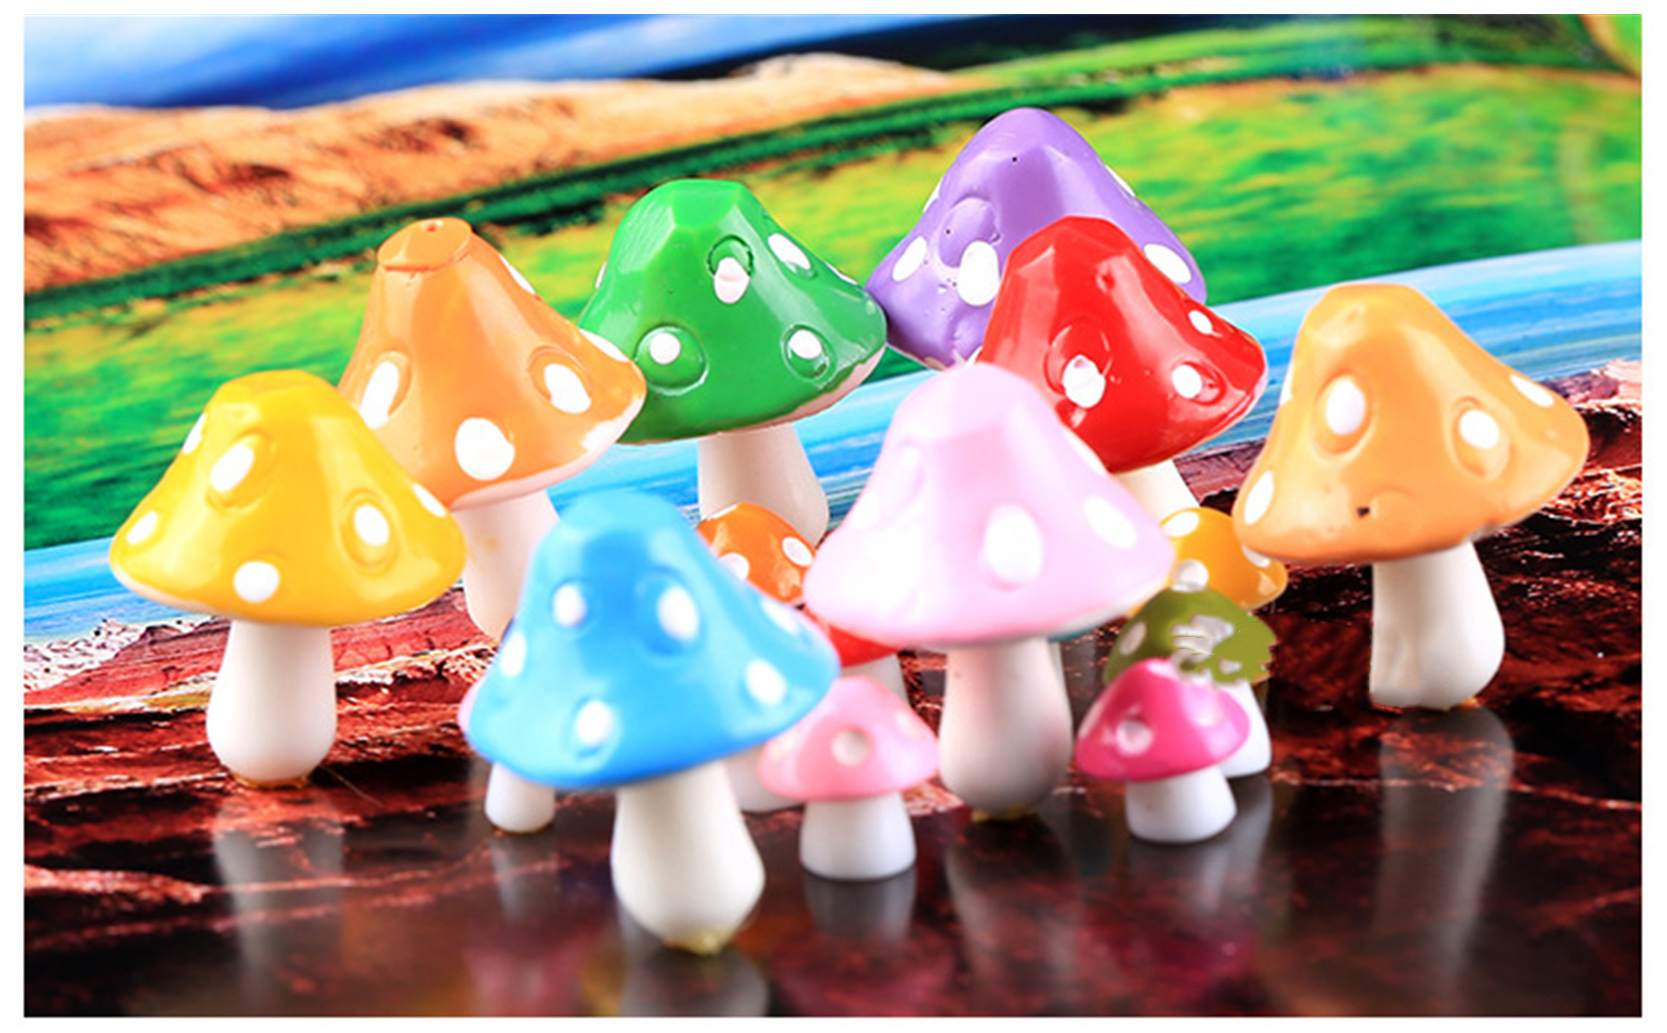 New Style Resin Craft Micro Landscape Decoration Fashion Cute Mini Mushrooms Home Decorative Crafts 8 Colors For House Decor(China (Mainland))